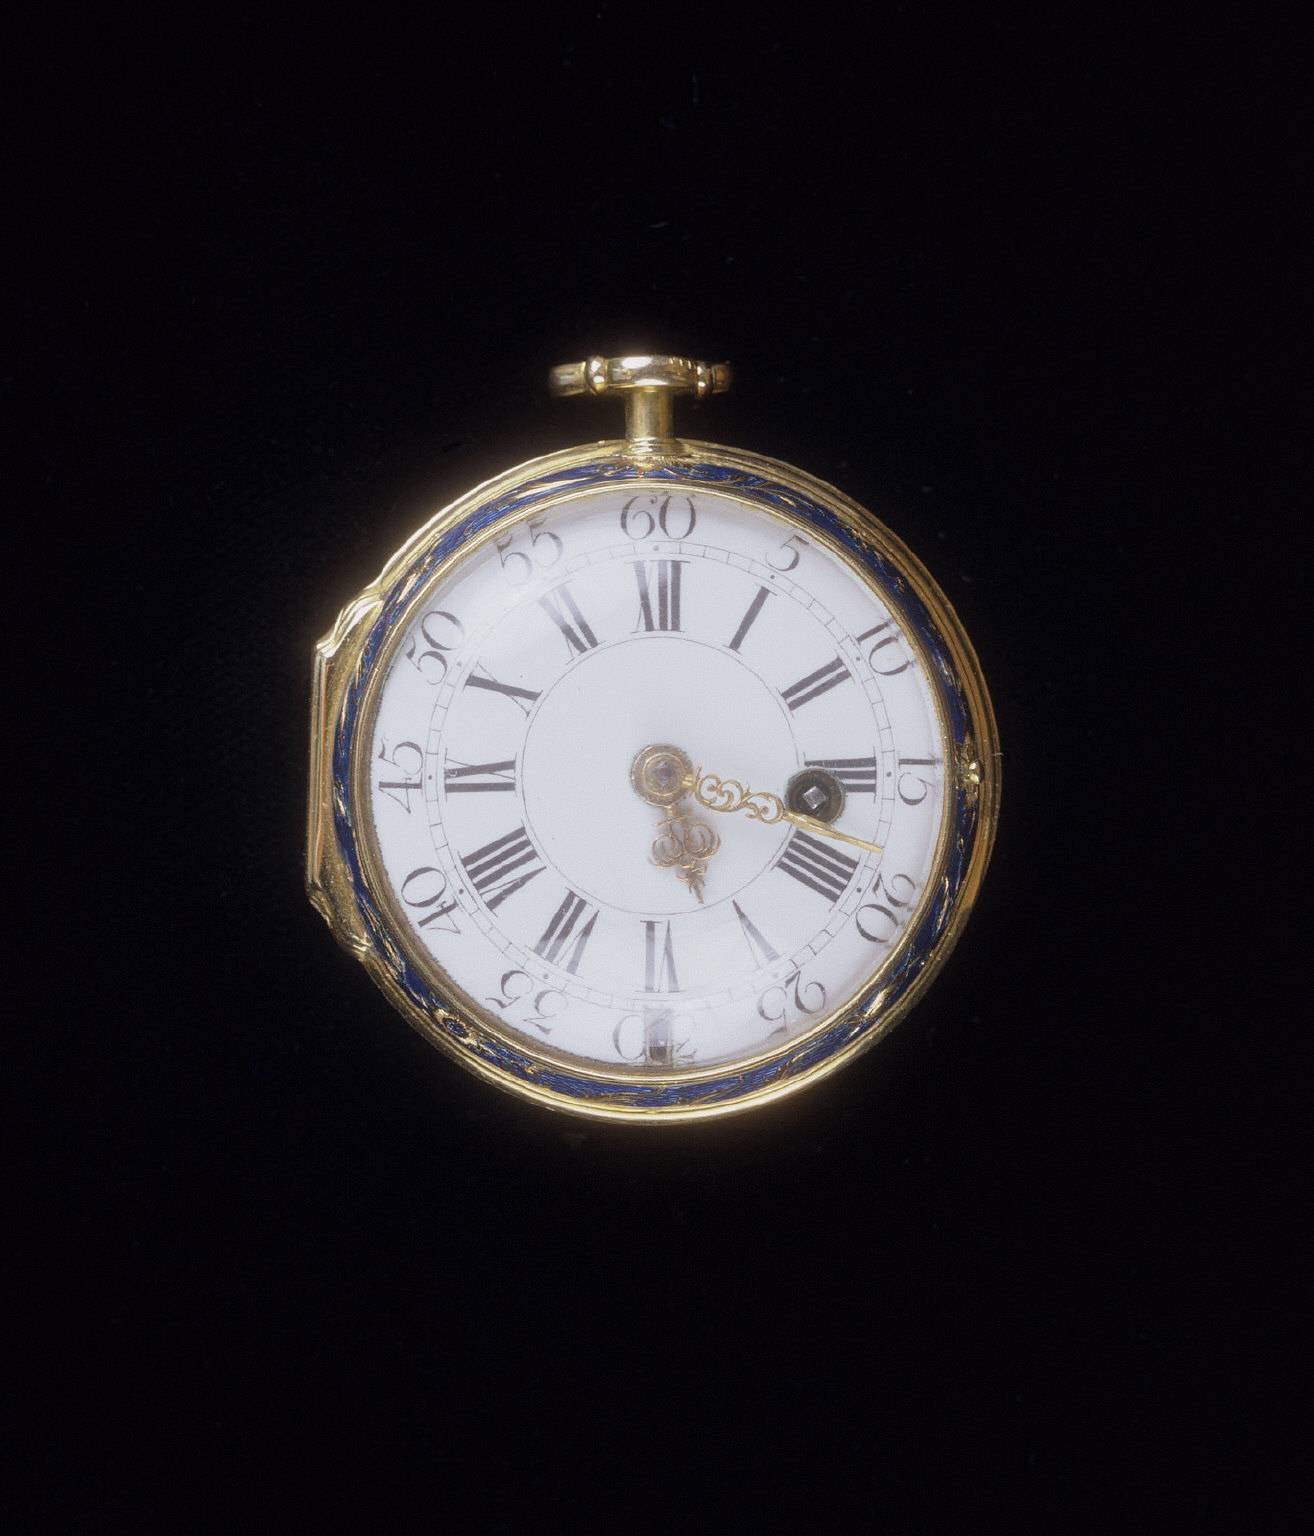 Gold and Blue Enamel Verge Watch